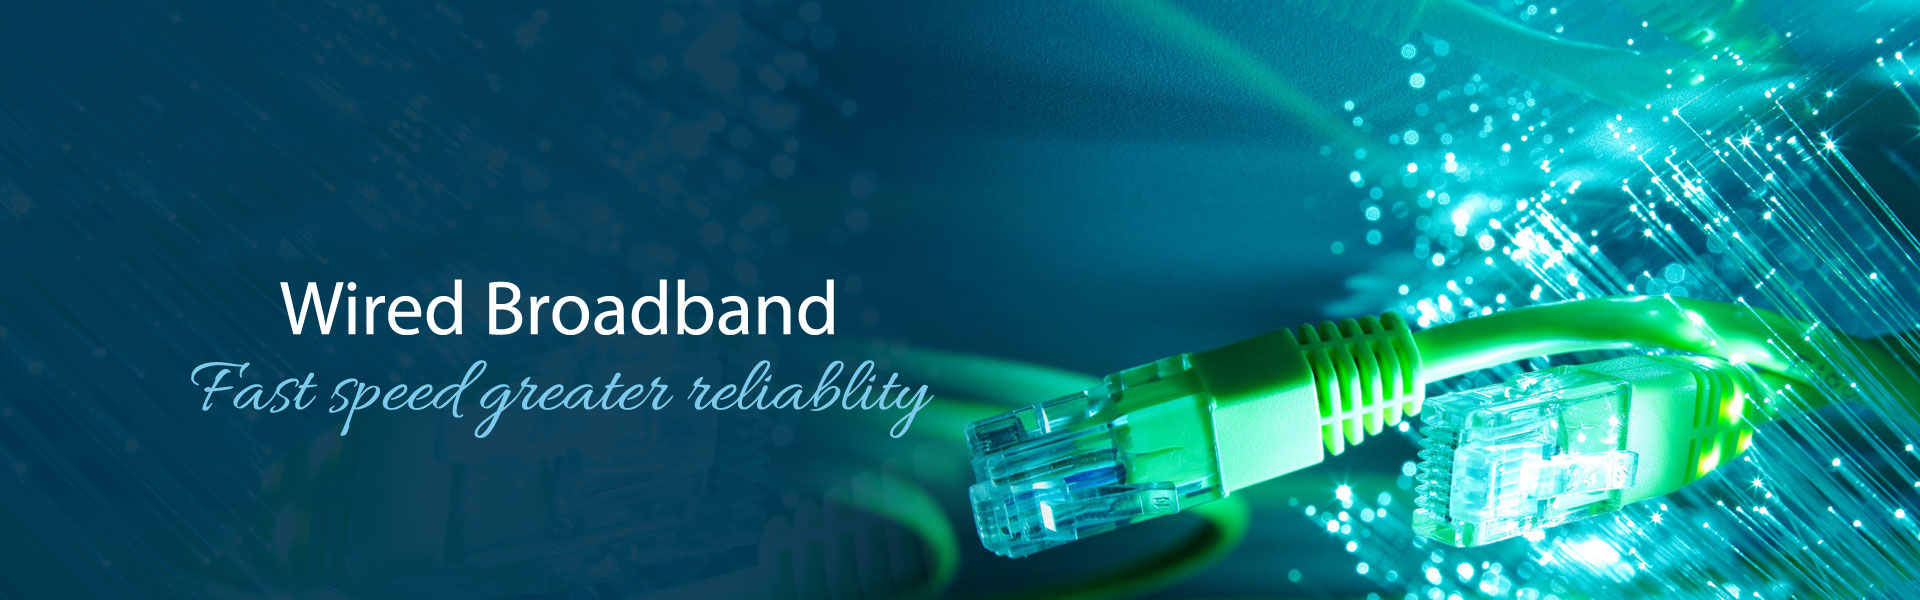 Wired Broadband Services | Broadband Internet Connection | Fastest ...